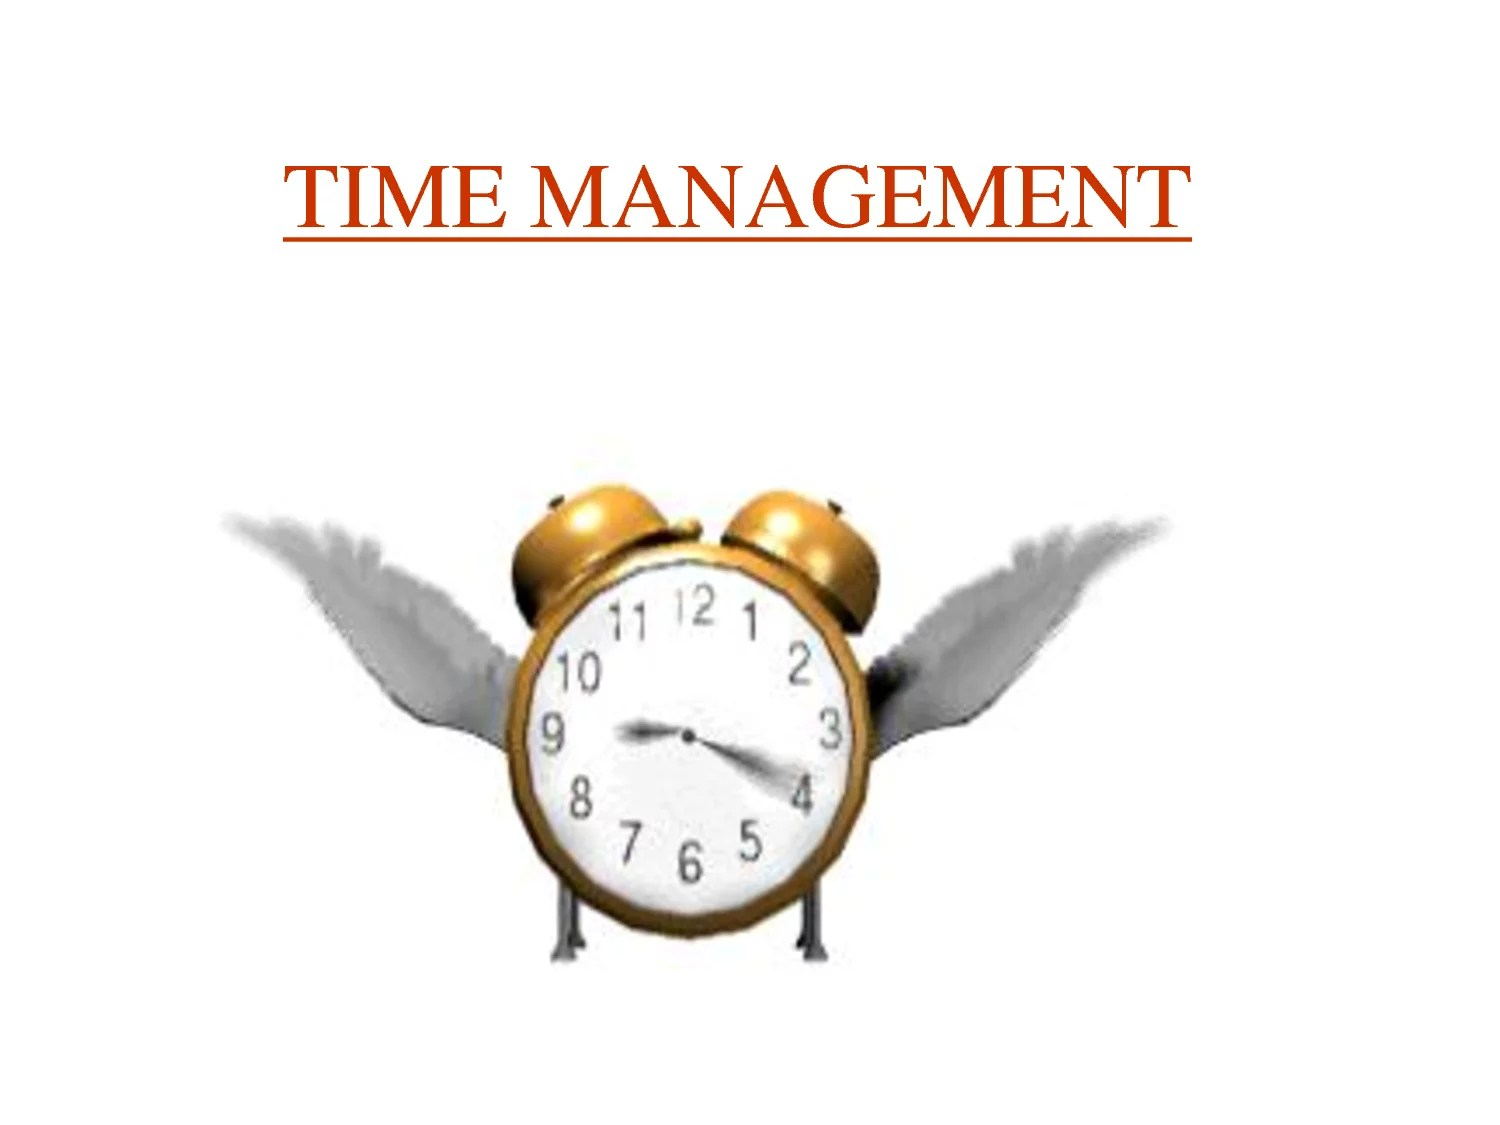 time management tips to help you reduce stress and increase